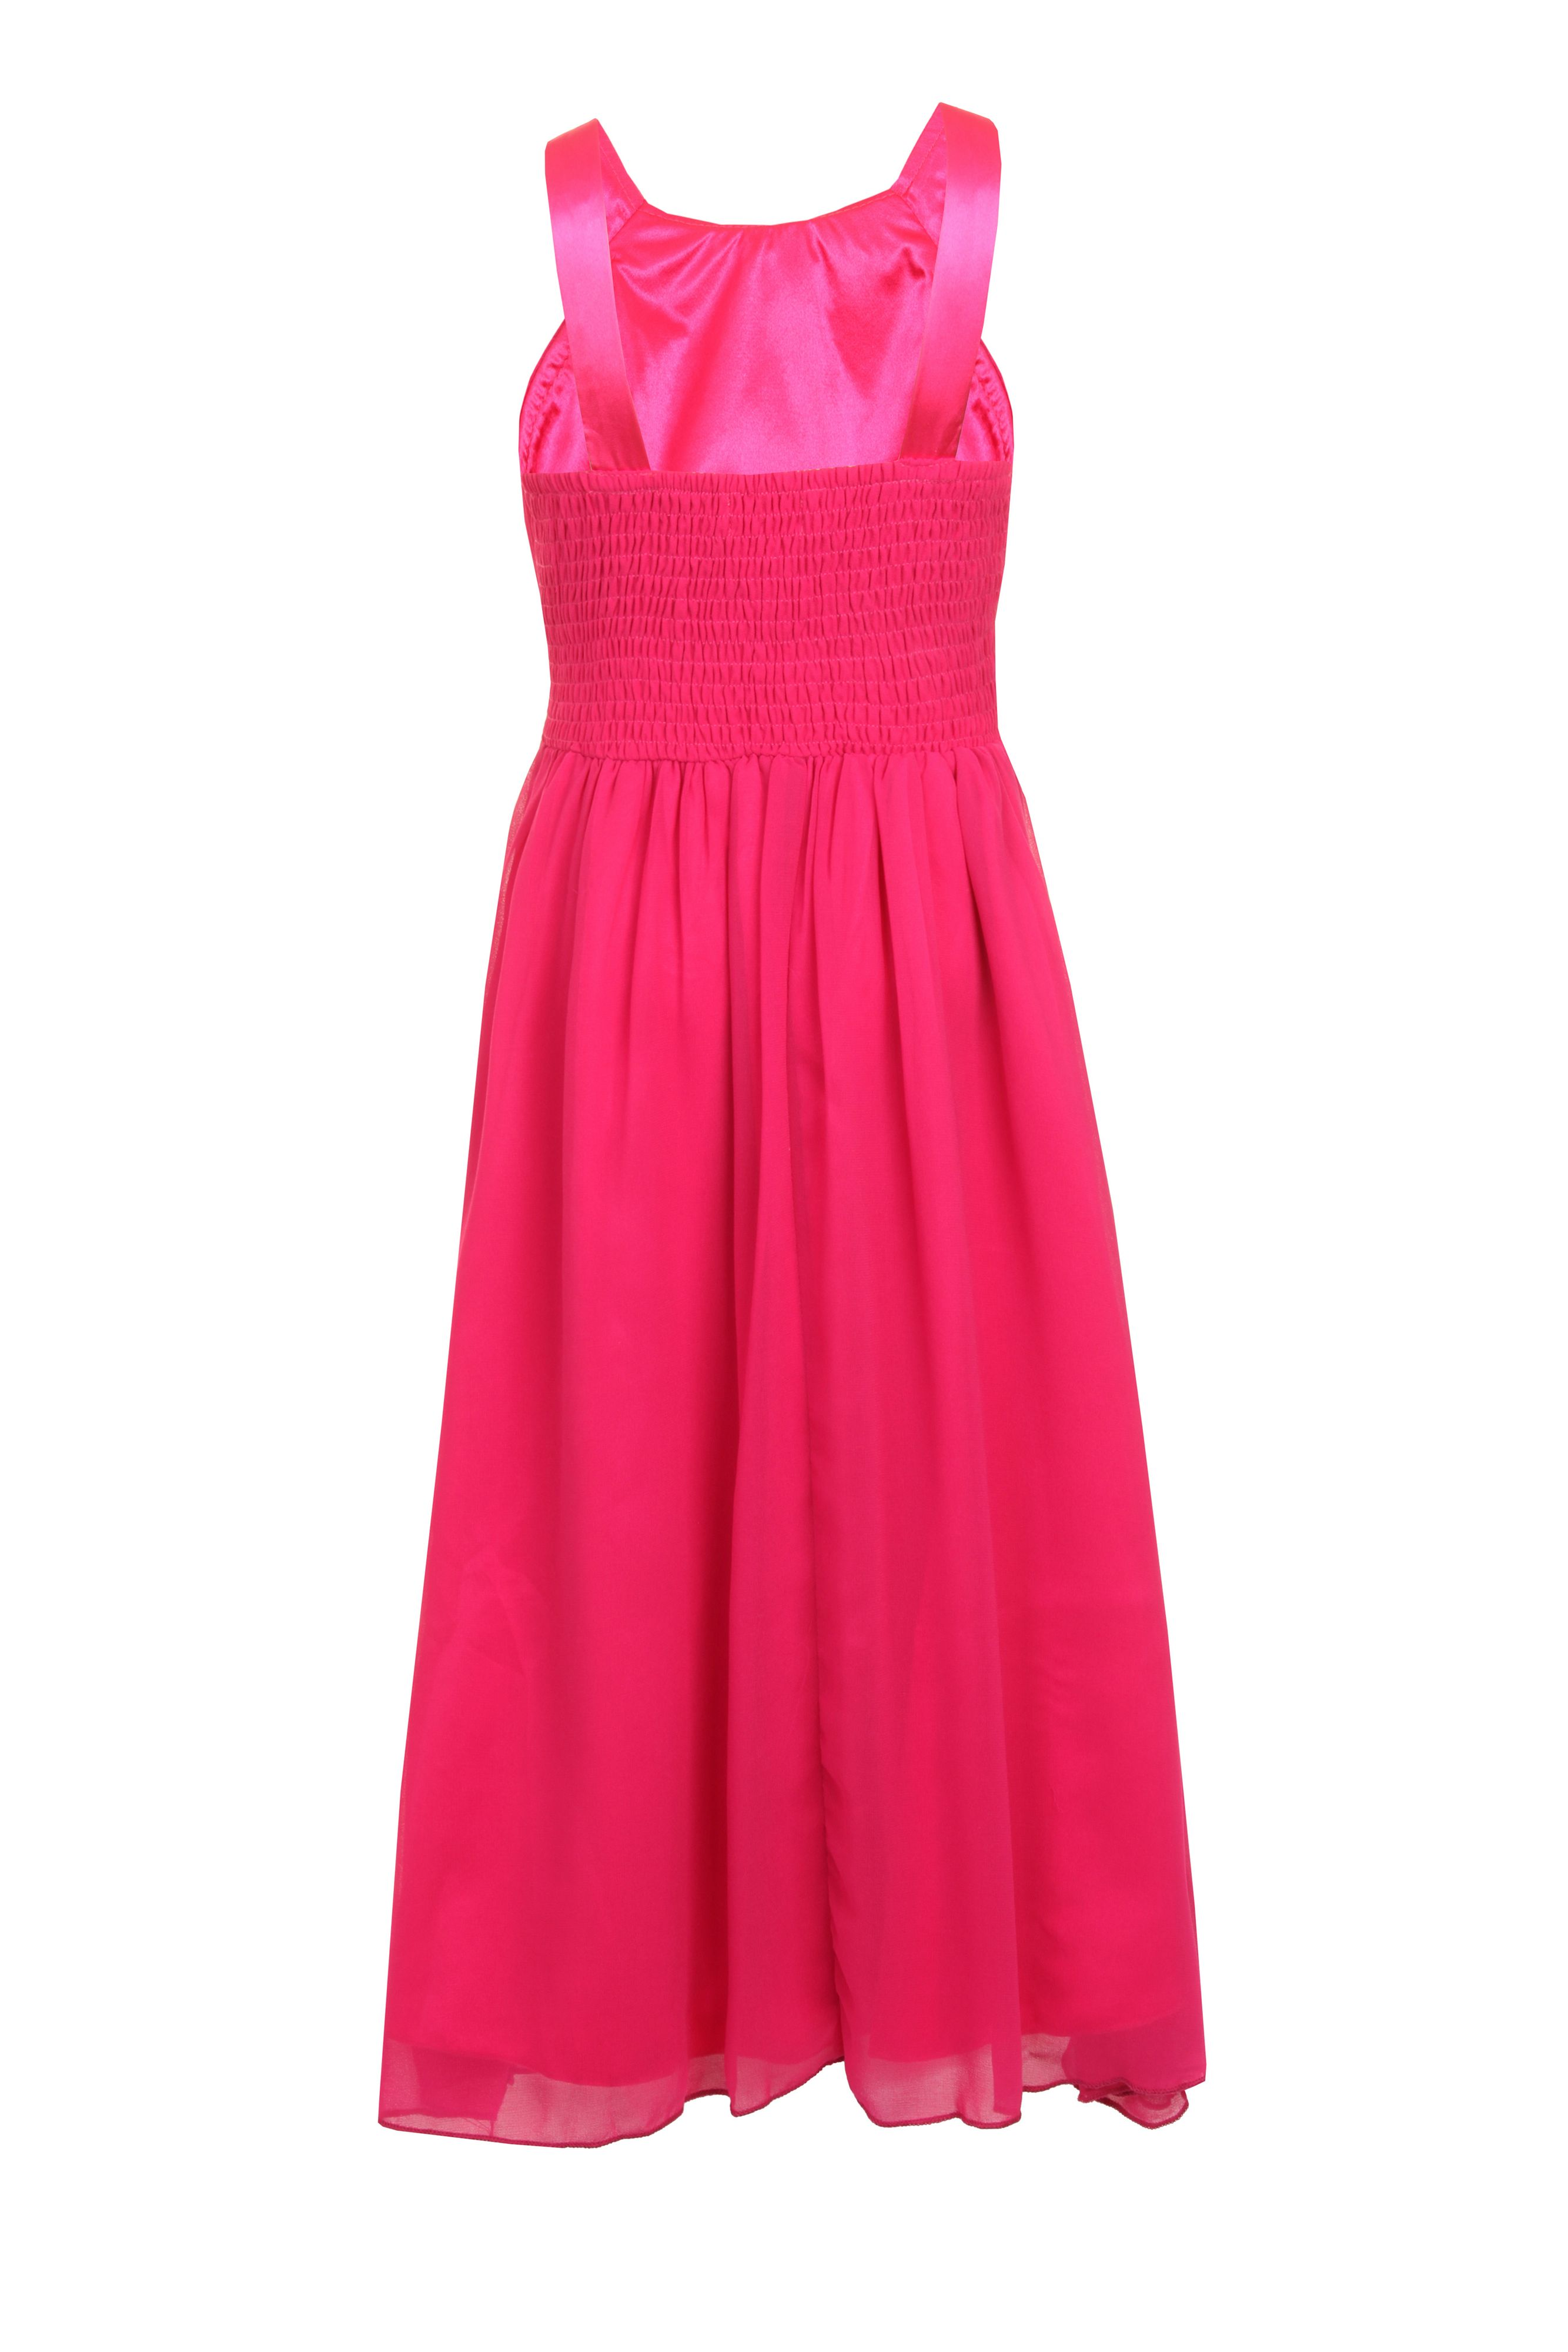 Girls embellished strap maxi dress